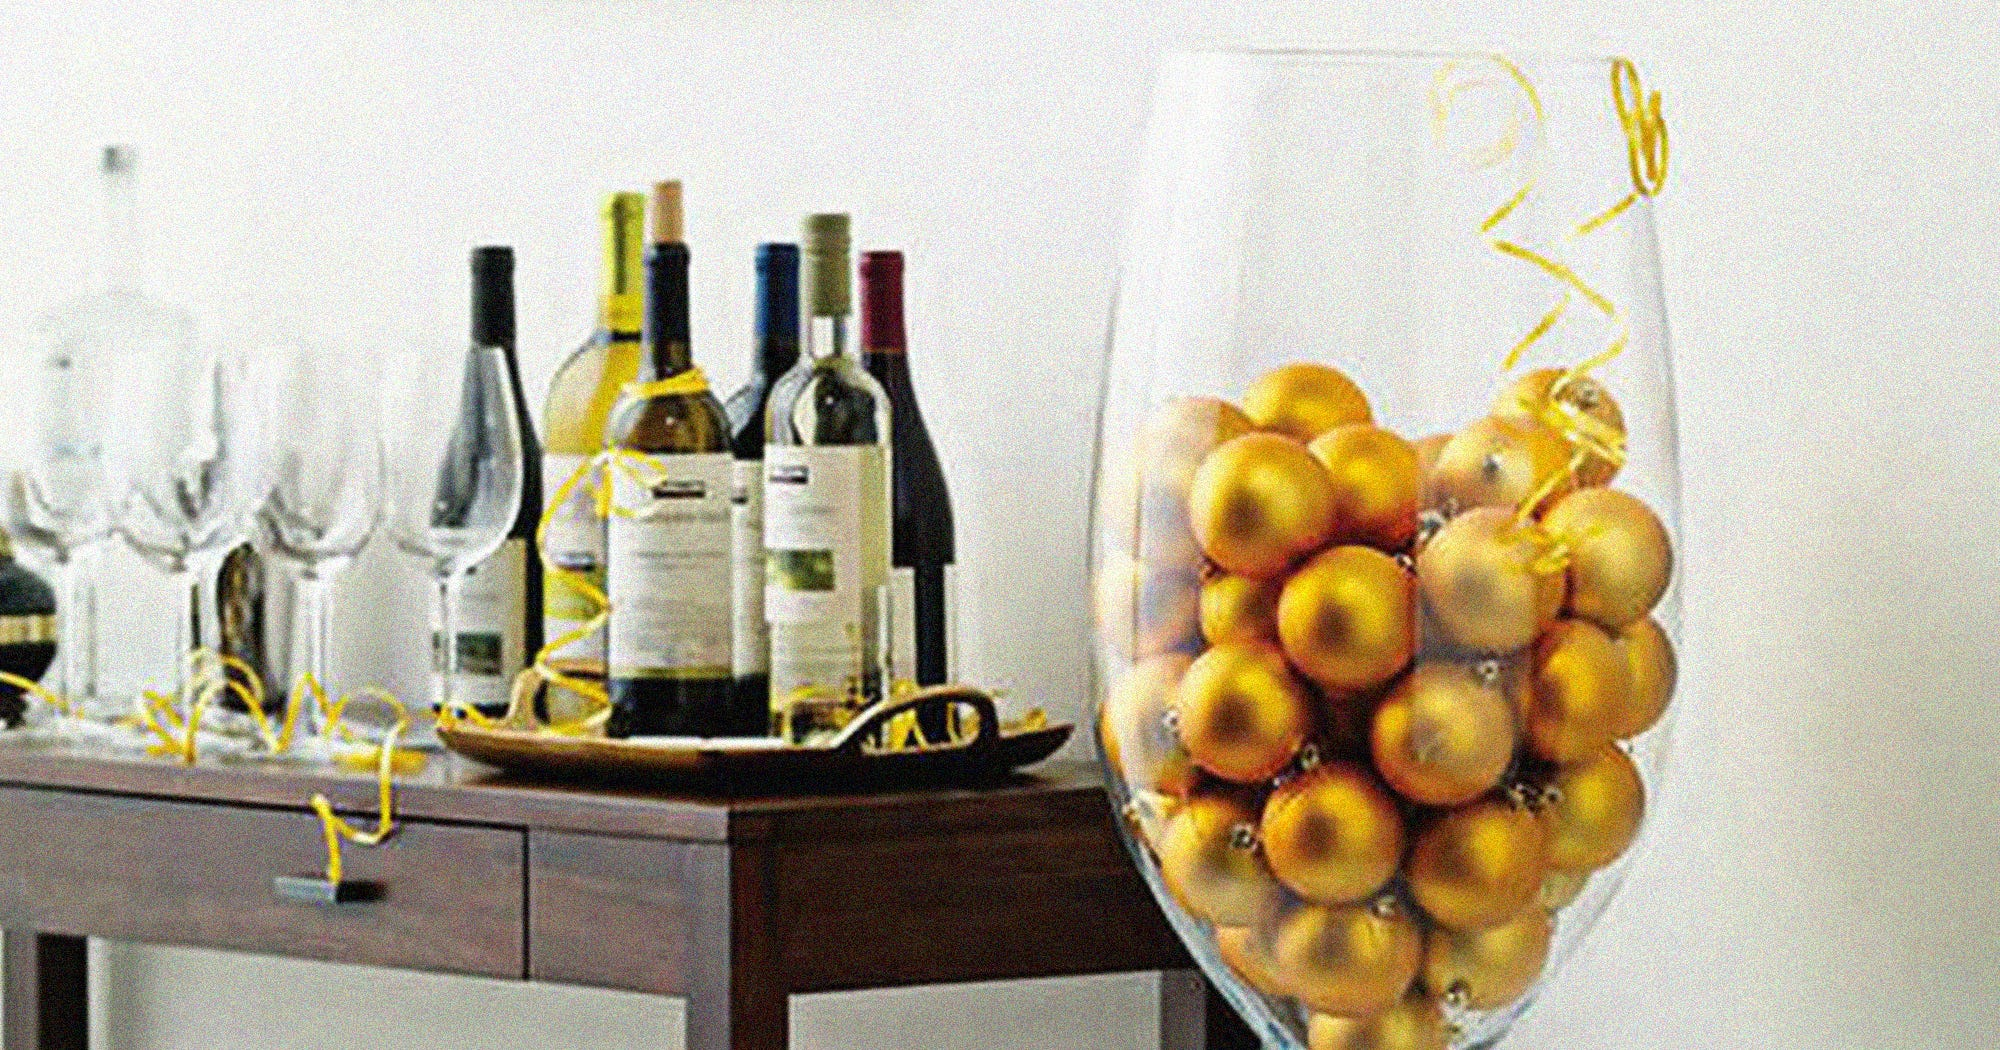 Is There A Rational Argument For Decorating Your Home With This Giant Wine Glass?